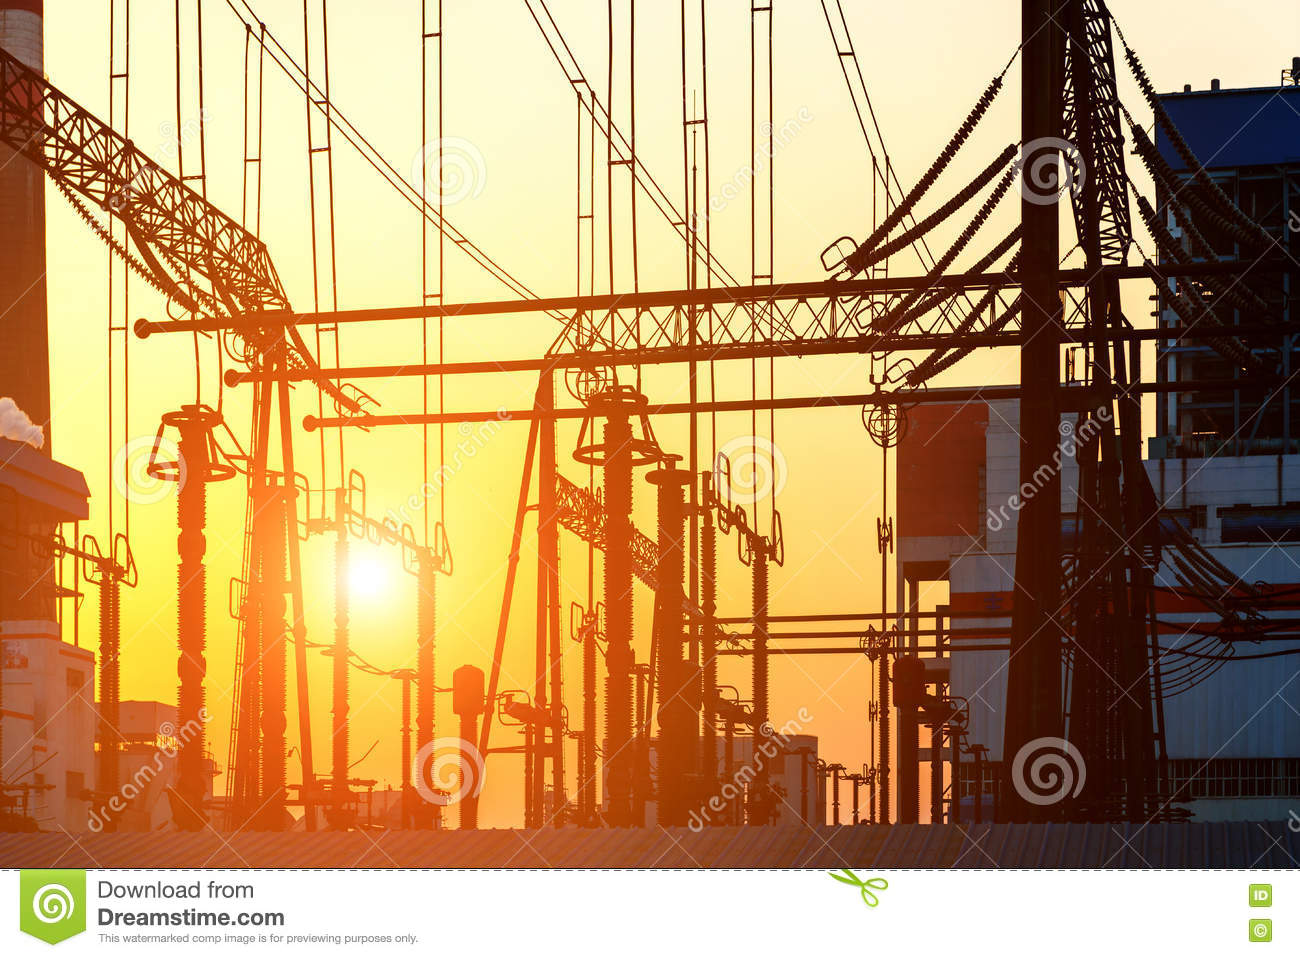 The high voltage transmission tower in the sunset